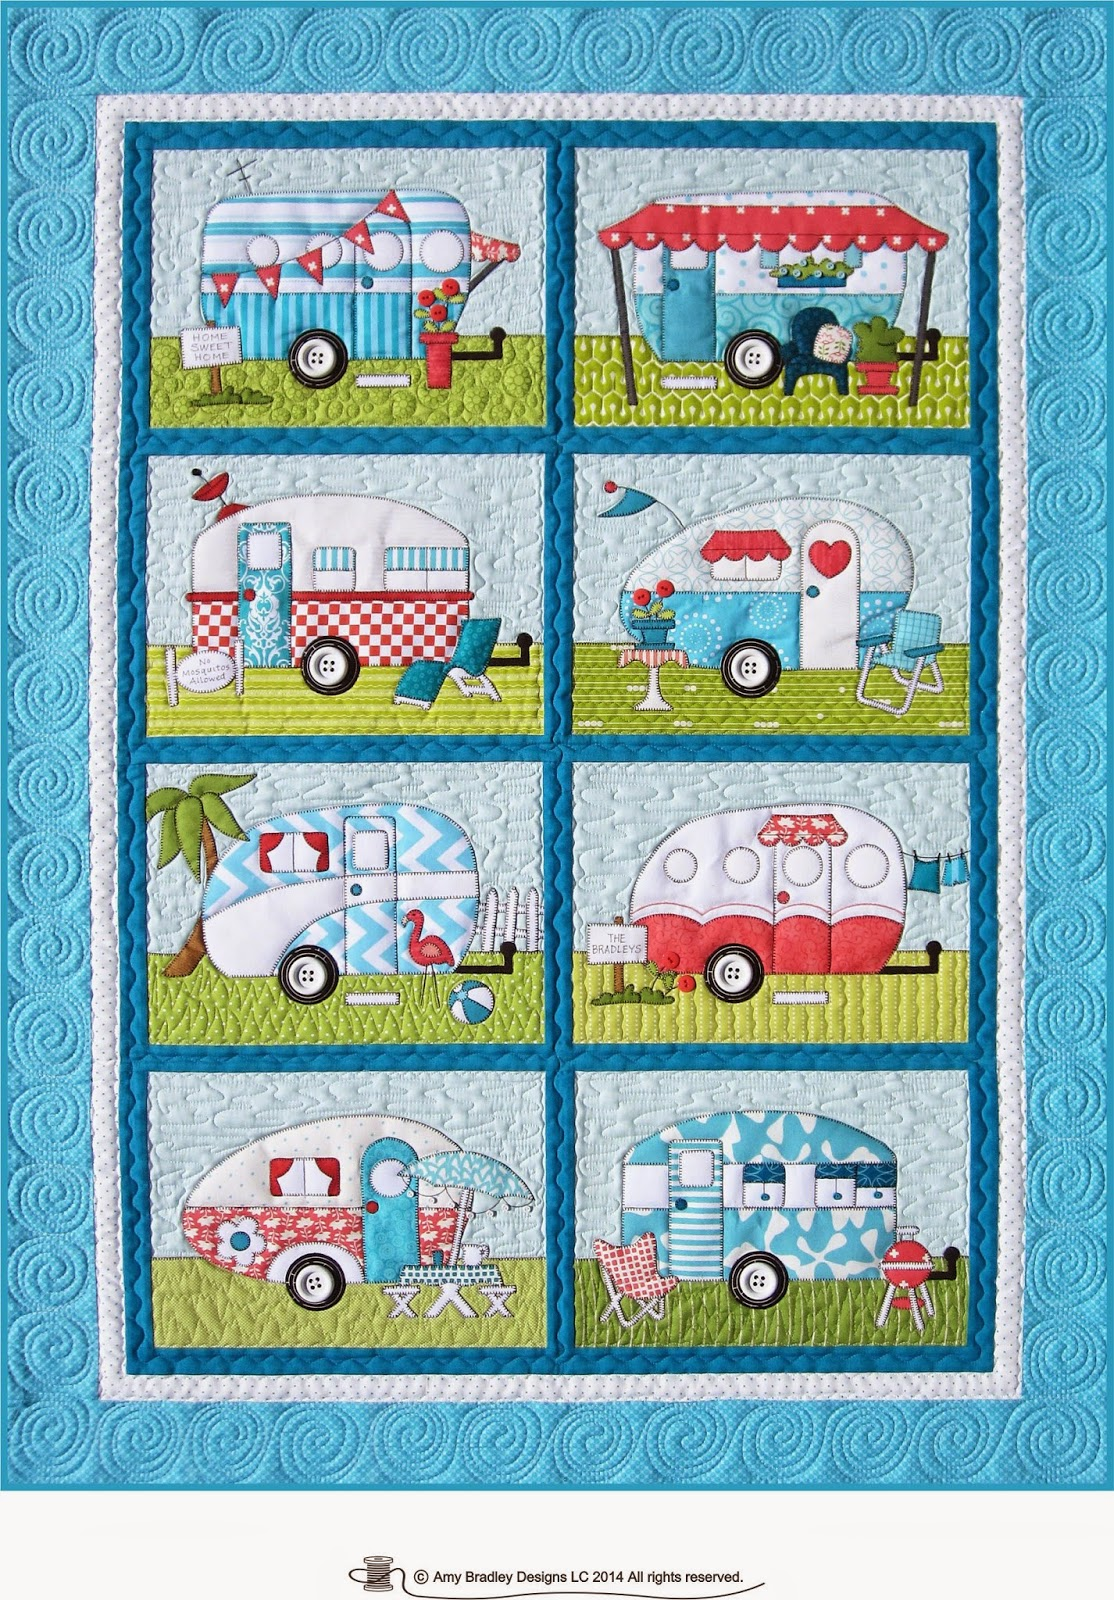 Popular First She Realized It Would Look Great In Her New RVs Bedroom Then She Saw The Pattern In An Episode Of The Midnight Quilt Show And The Rest Is History Get The Tissues Ready DFoust Is Using The Town Square Quilt Pattern To Create